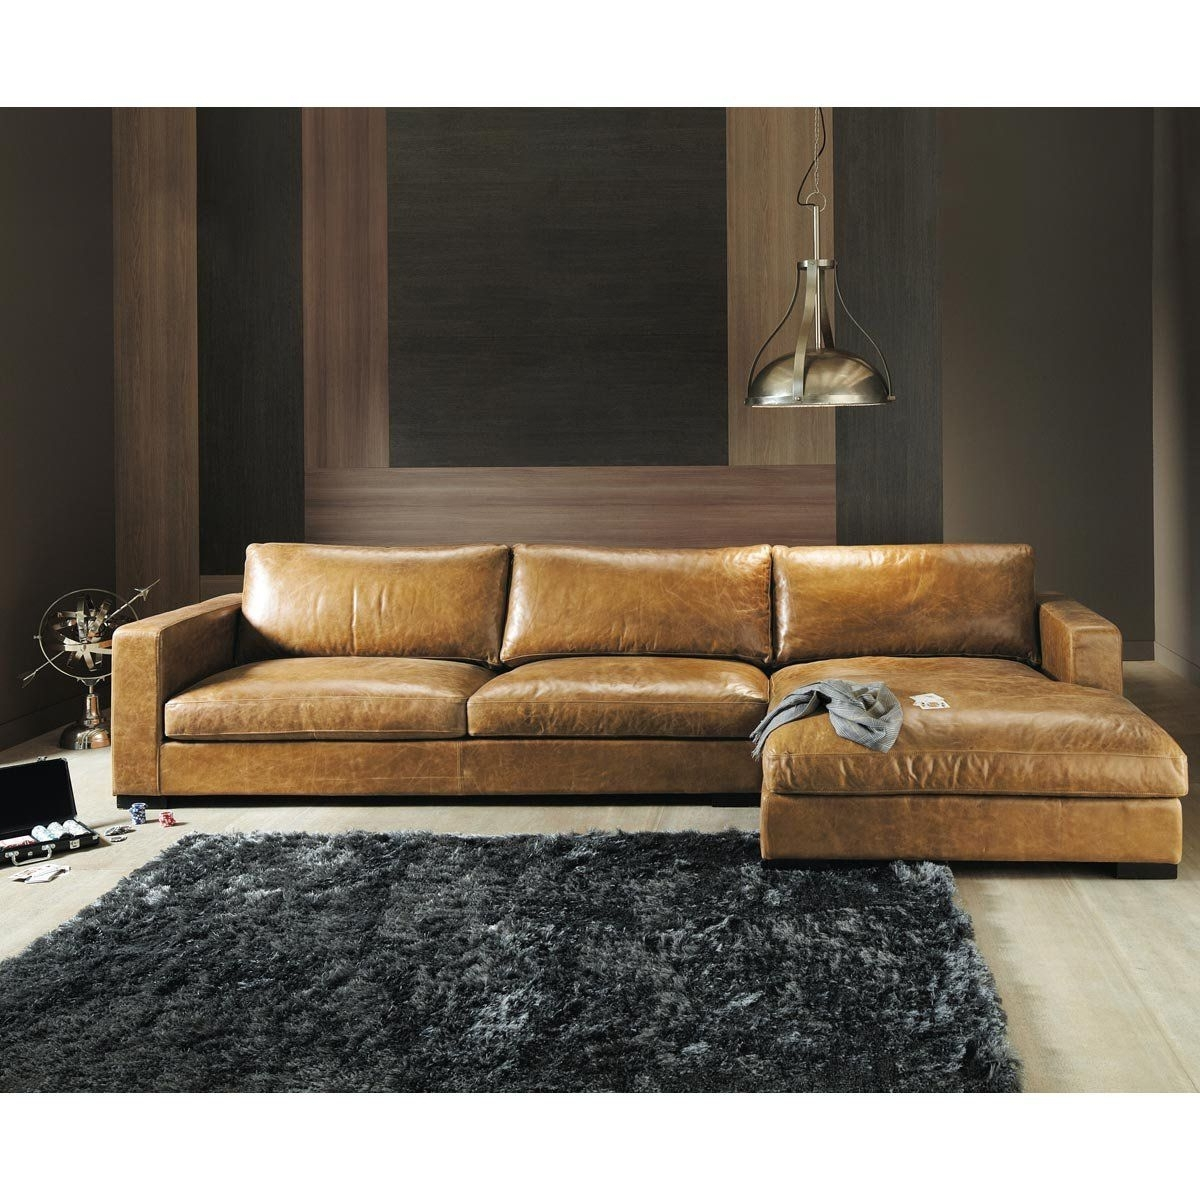 Sofa Seats, Leather Throughout Best And Newest Vintage Sectional Sofas (View 10 of 20)